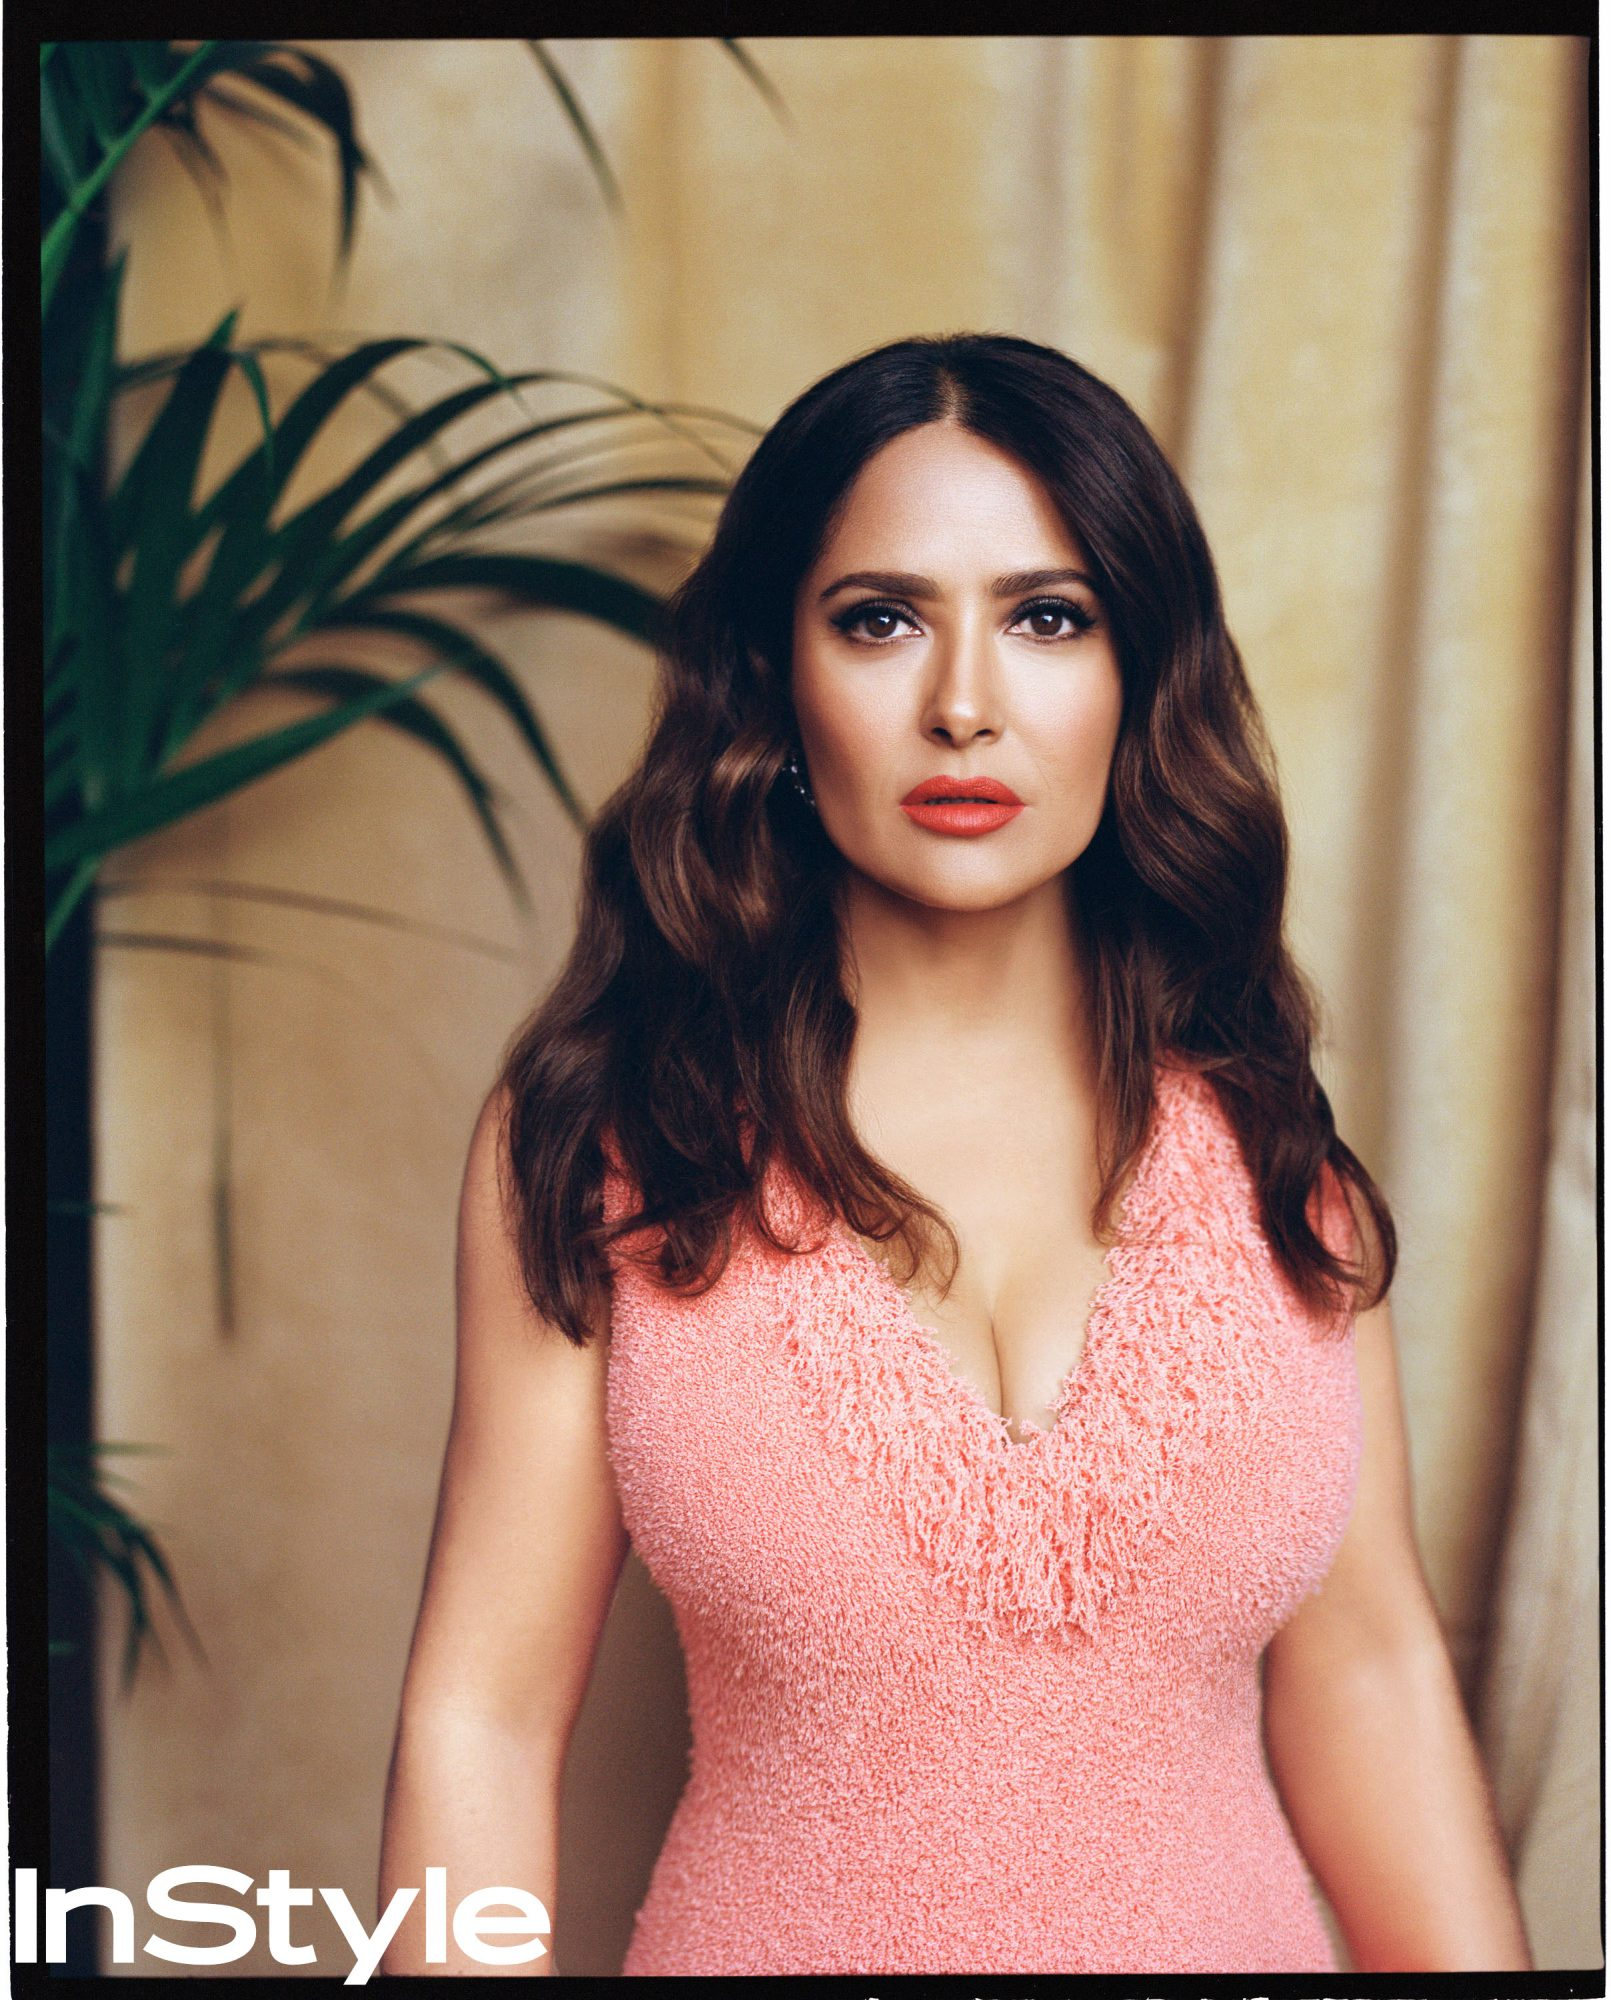 Salma Hayek - InStyle Cover - DO NOT REUSE